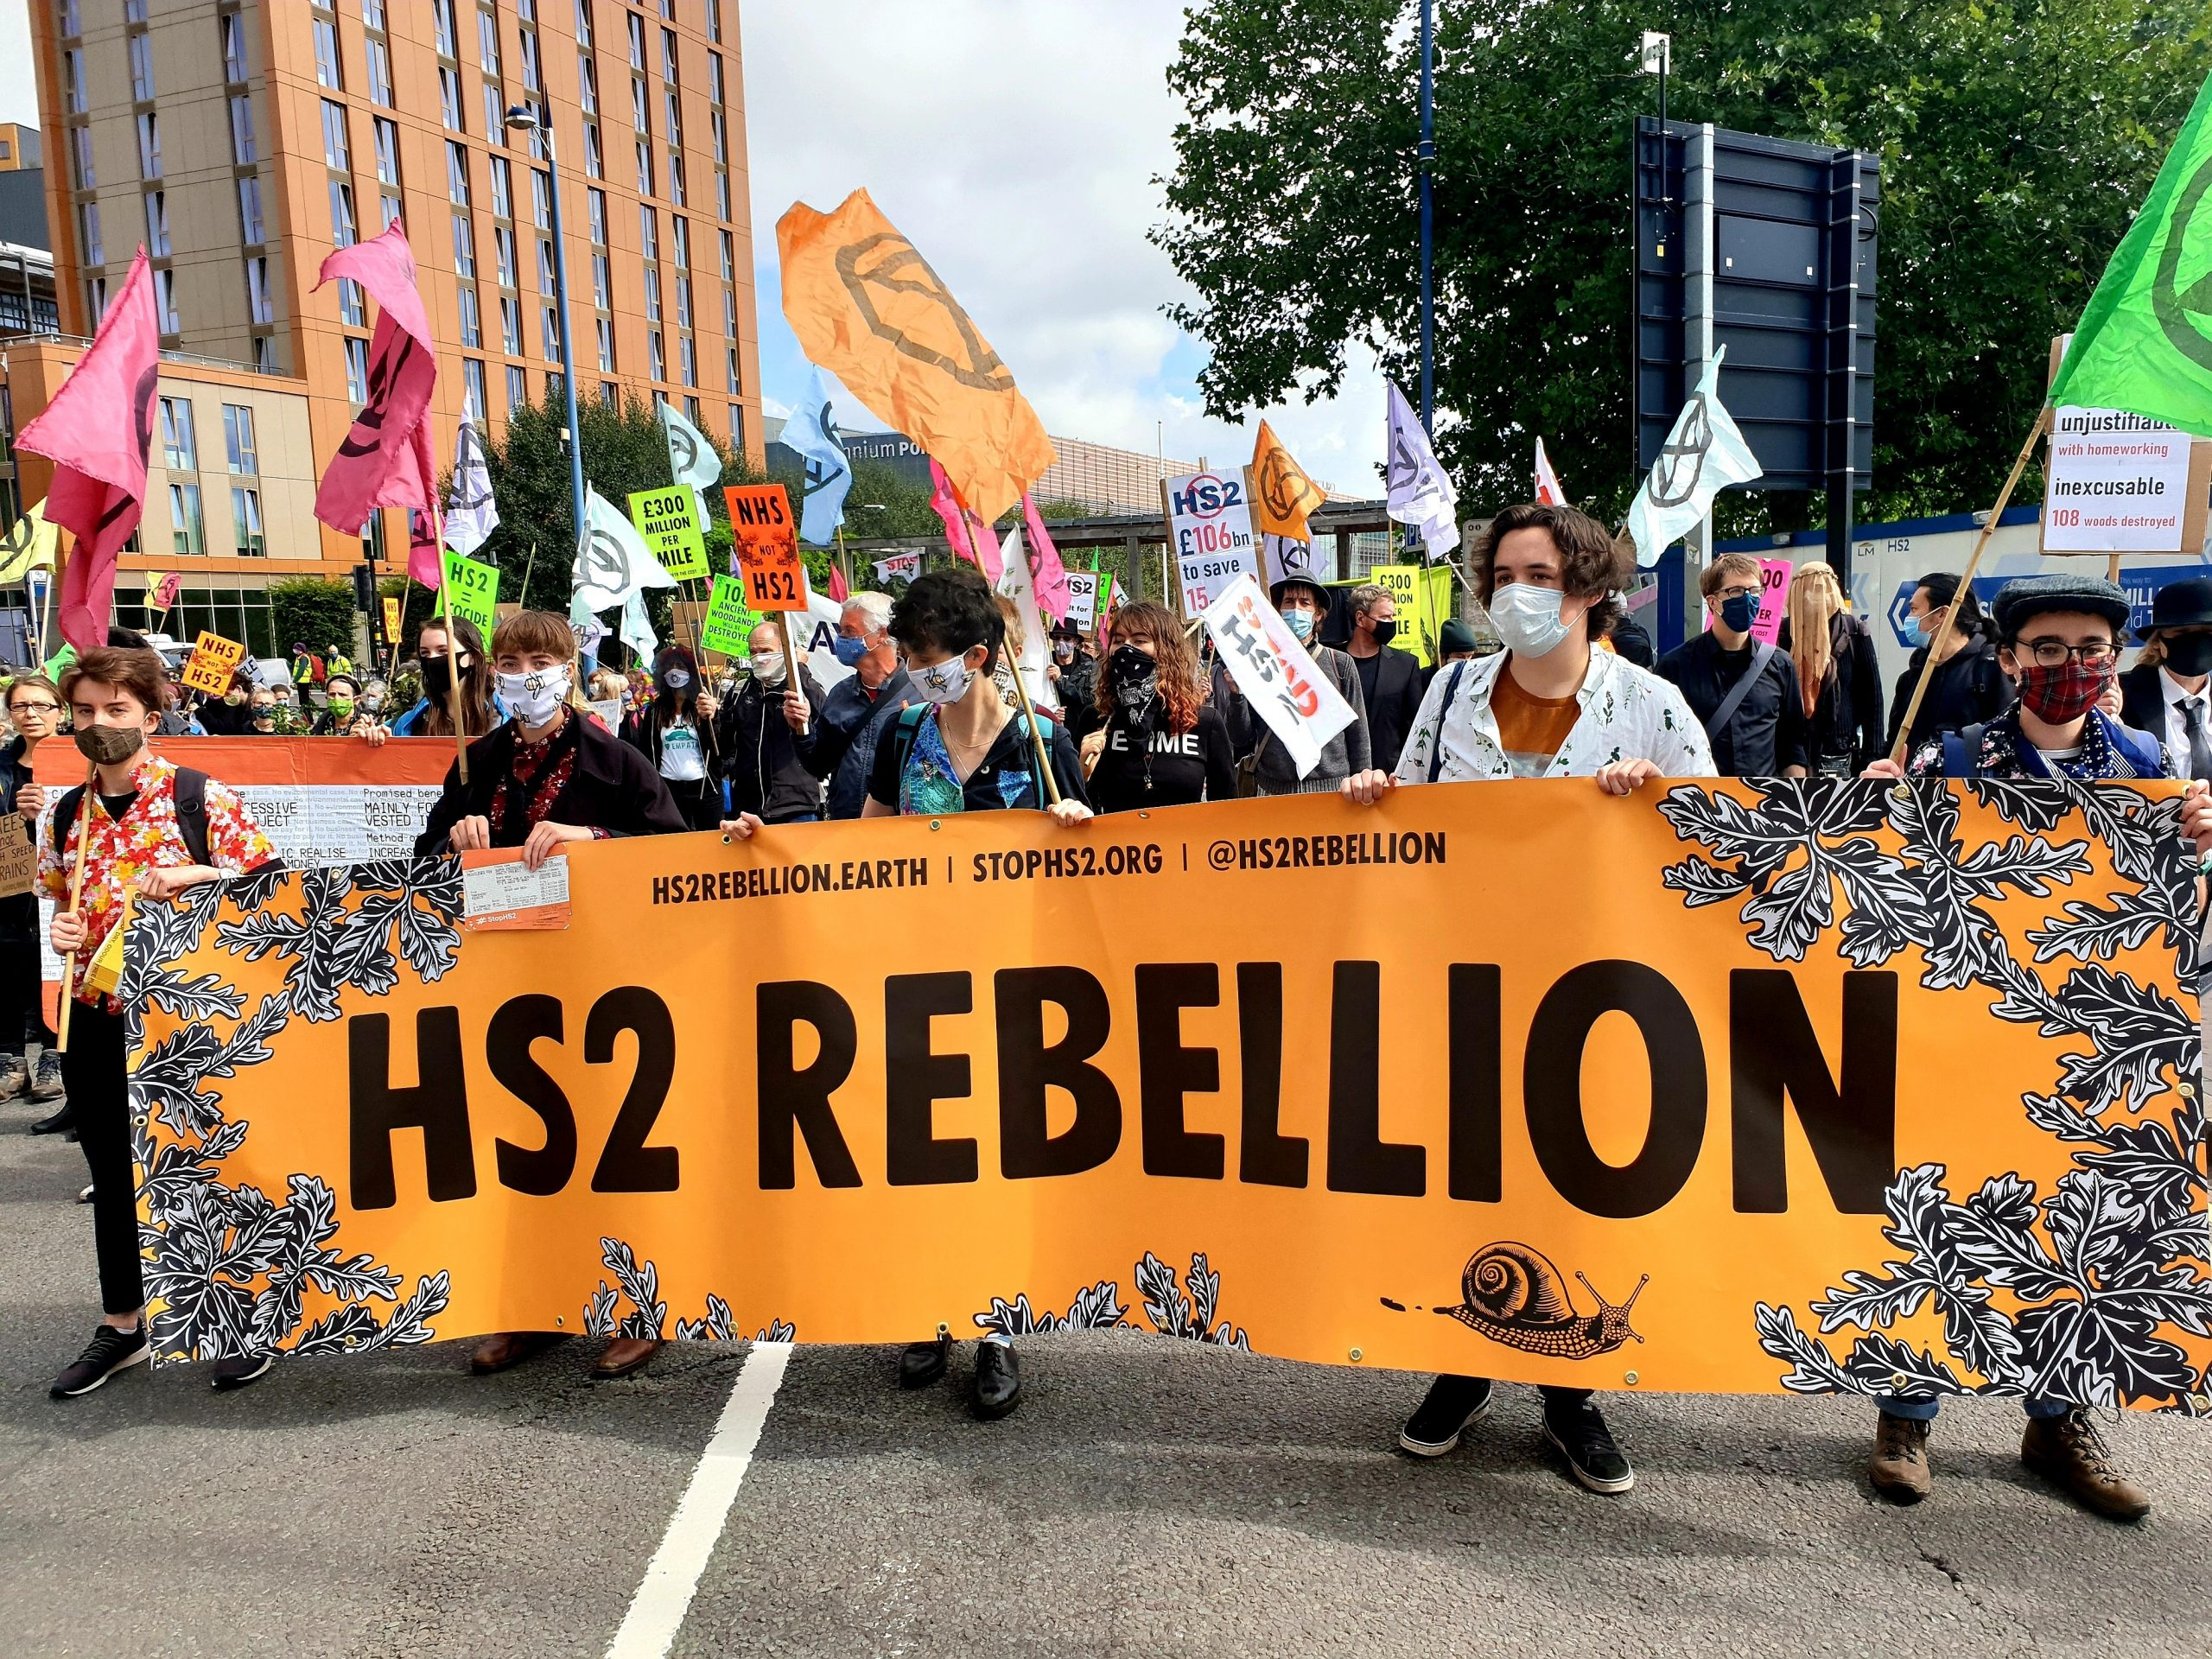 Friday 28th August: HS2 Rebellion and XR Actions